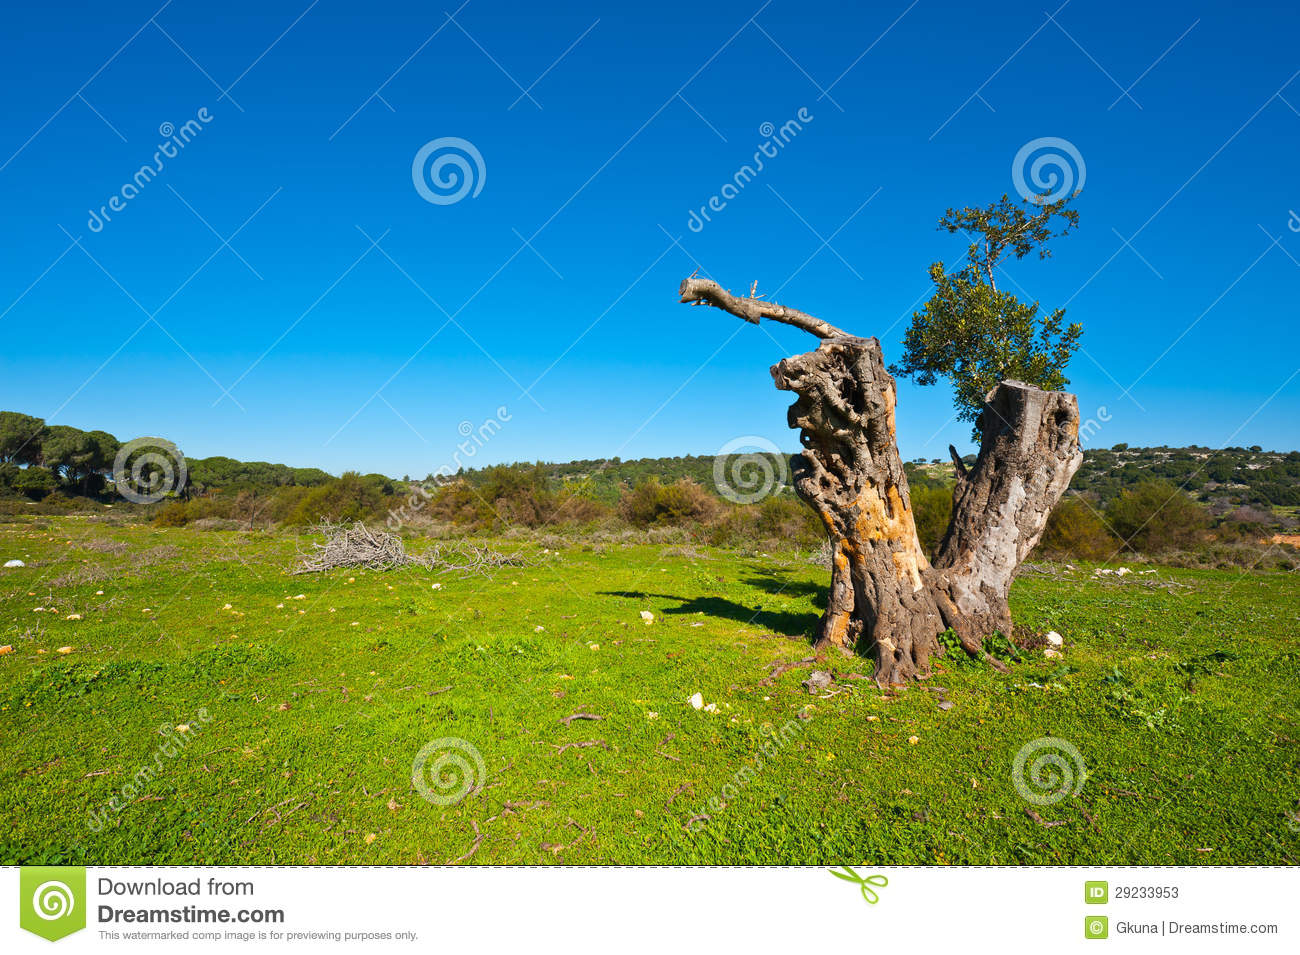 Download Galilee imagem de stock. Imagem de flora, ecology, renewable - 29233953